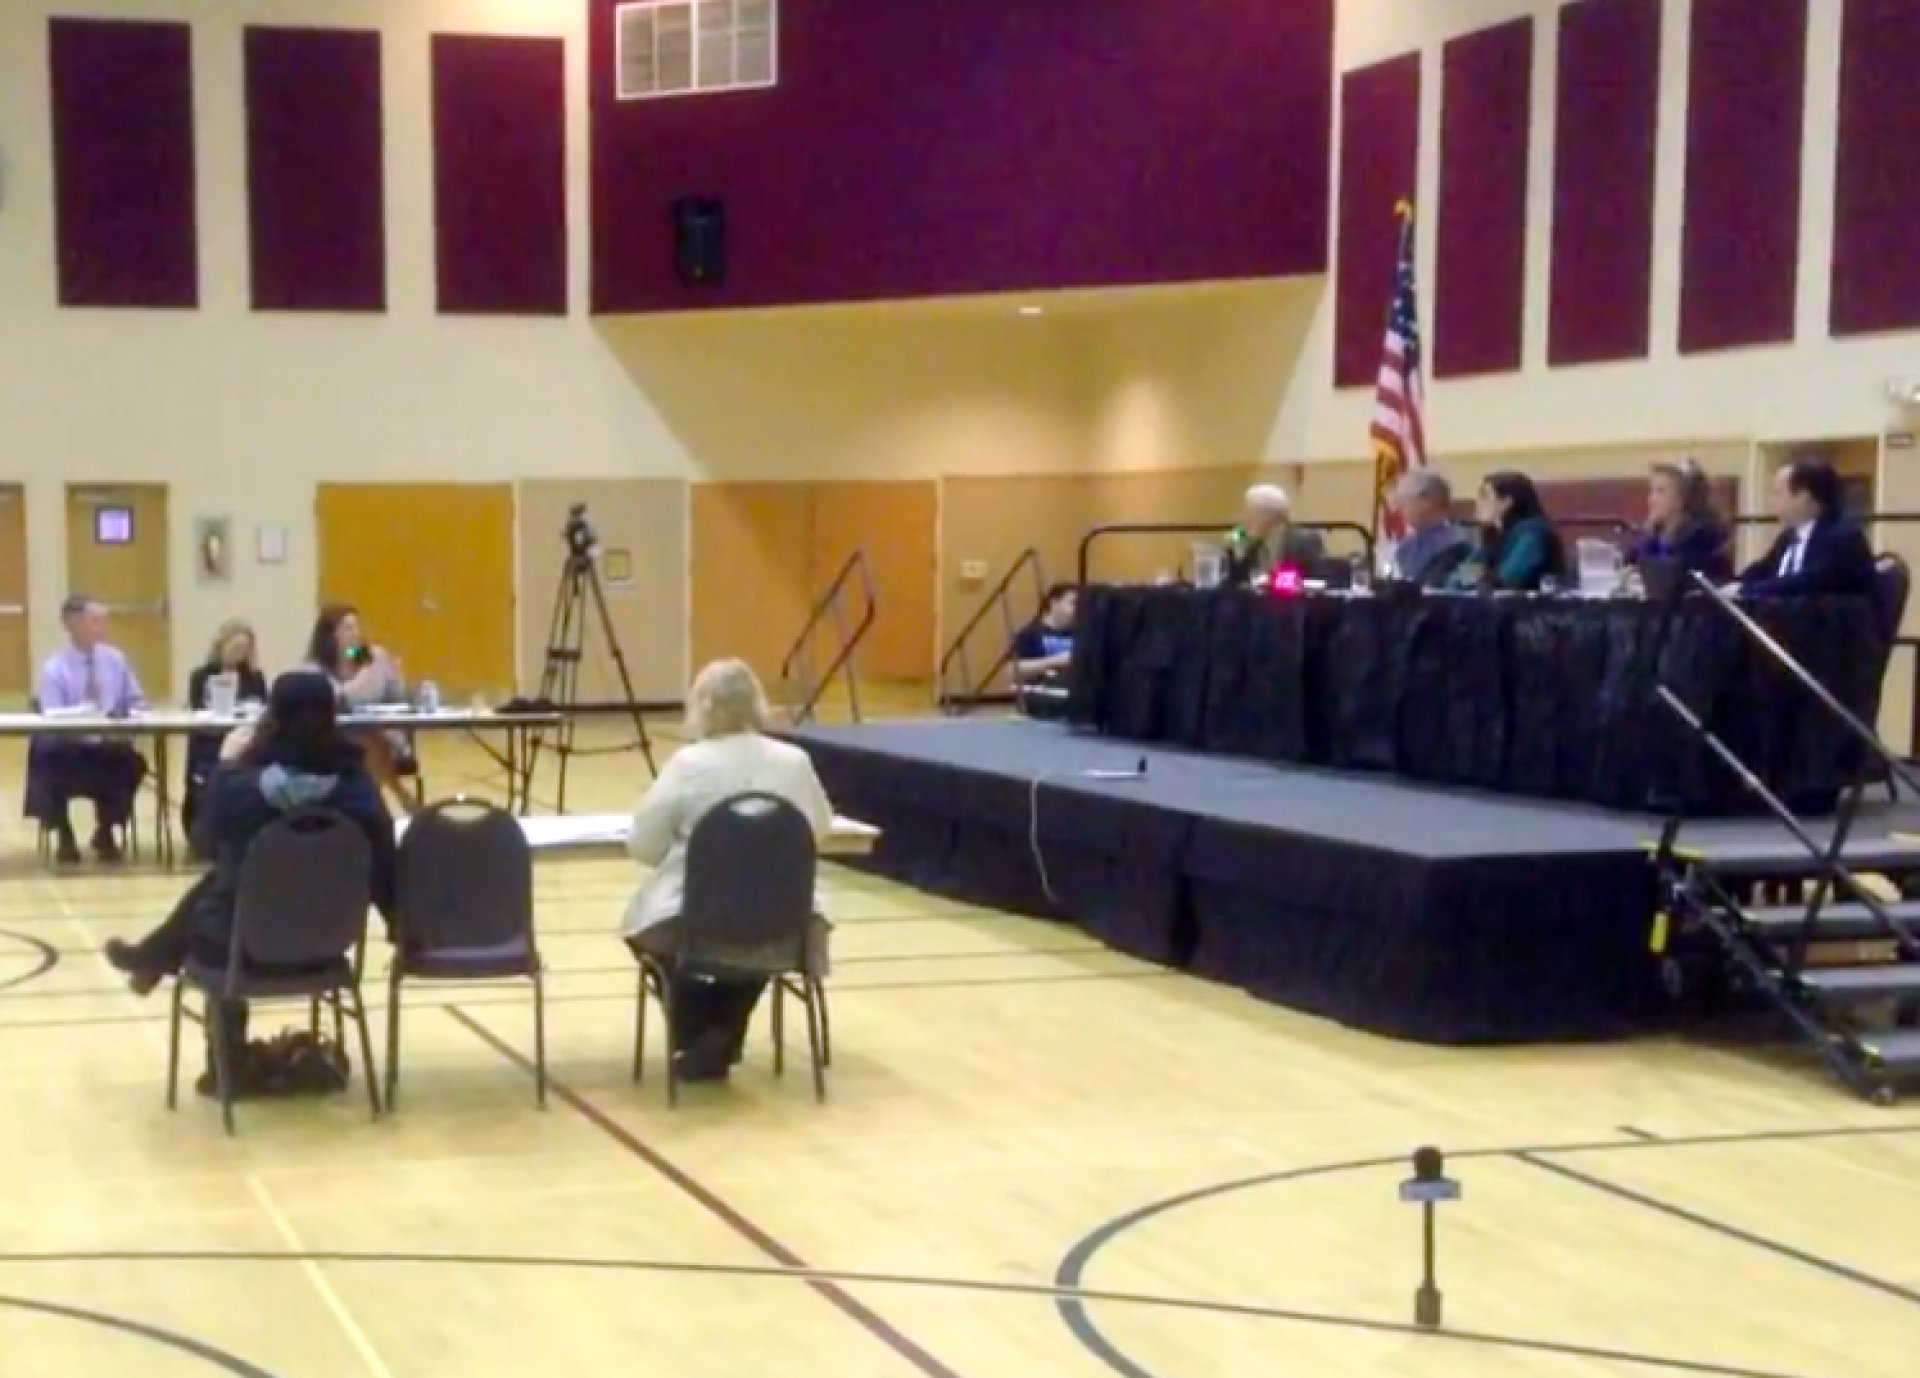 Arcata City Council meets with community members to discuss the McKinley statue at the Arcata Community Center on March 21. Photo by Tyrone McDonald.